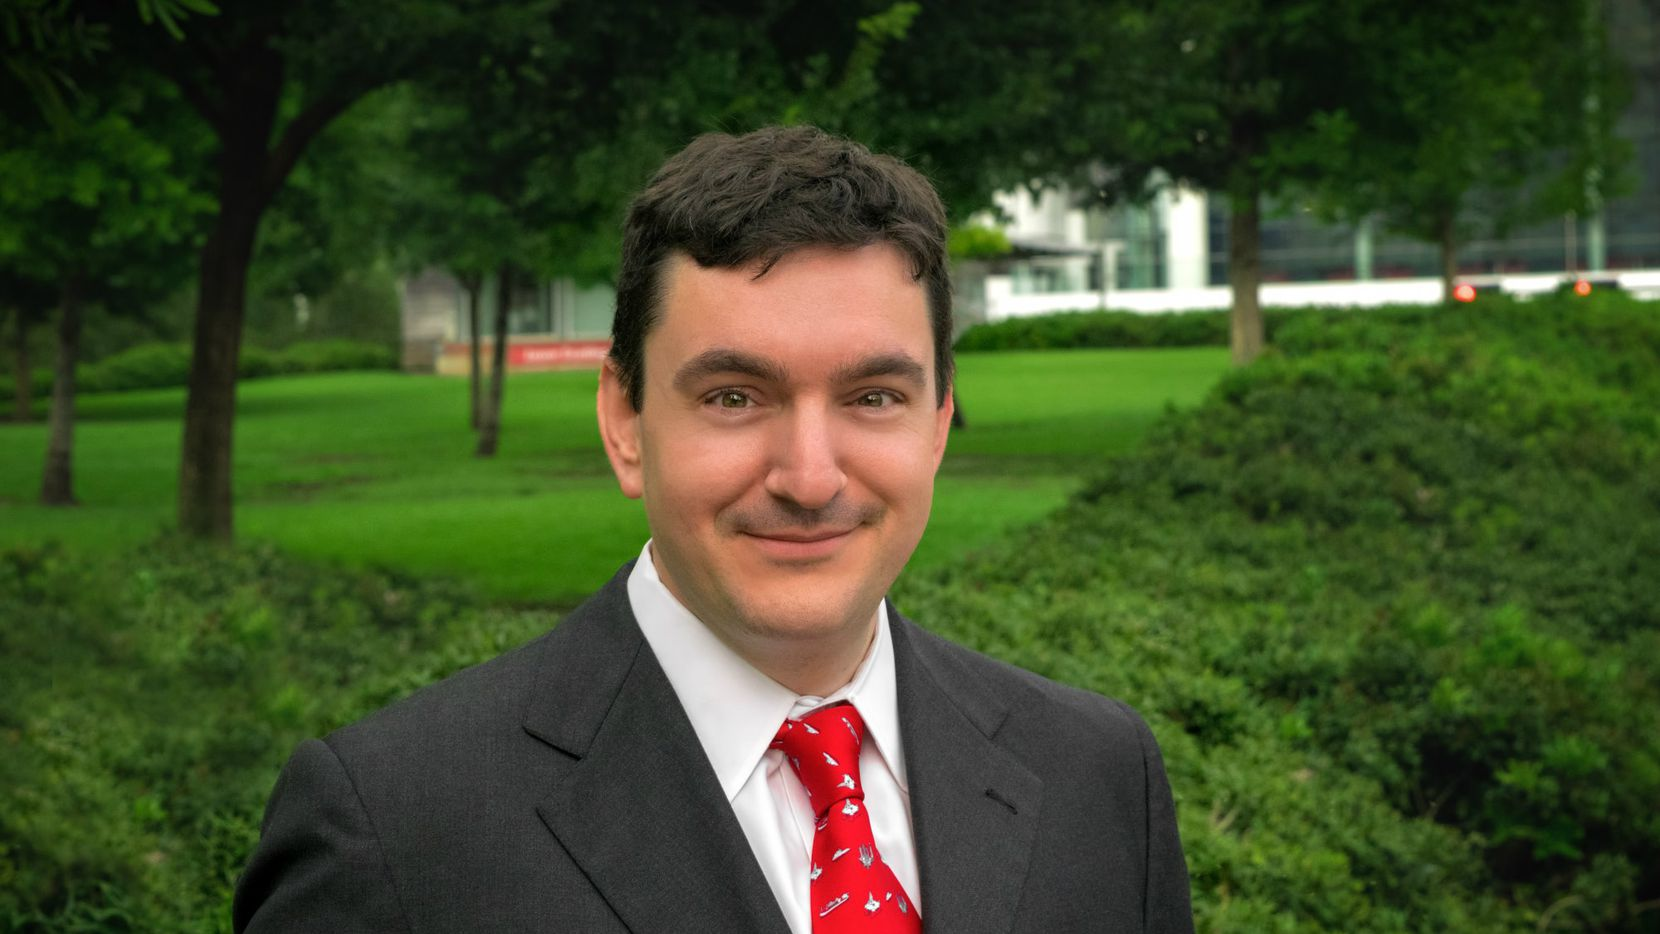 Stefano de Stefano, a Houston energy attorney, was the first Republican to announce a primary challenge against Sen. Ted Cruz in the 2018 contest. But he has a steep hill to climb to oust the sitting senator.